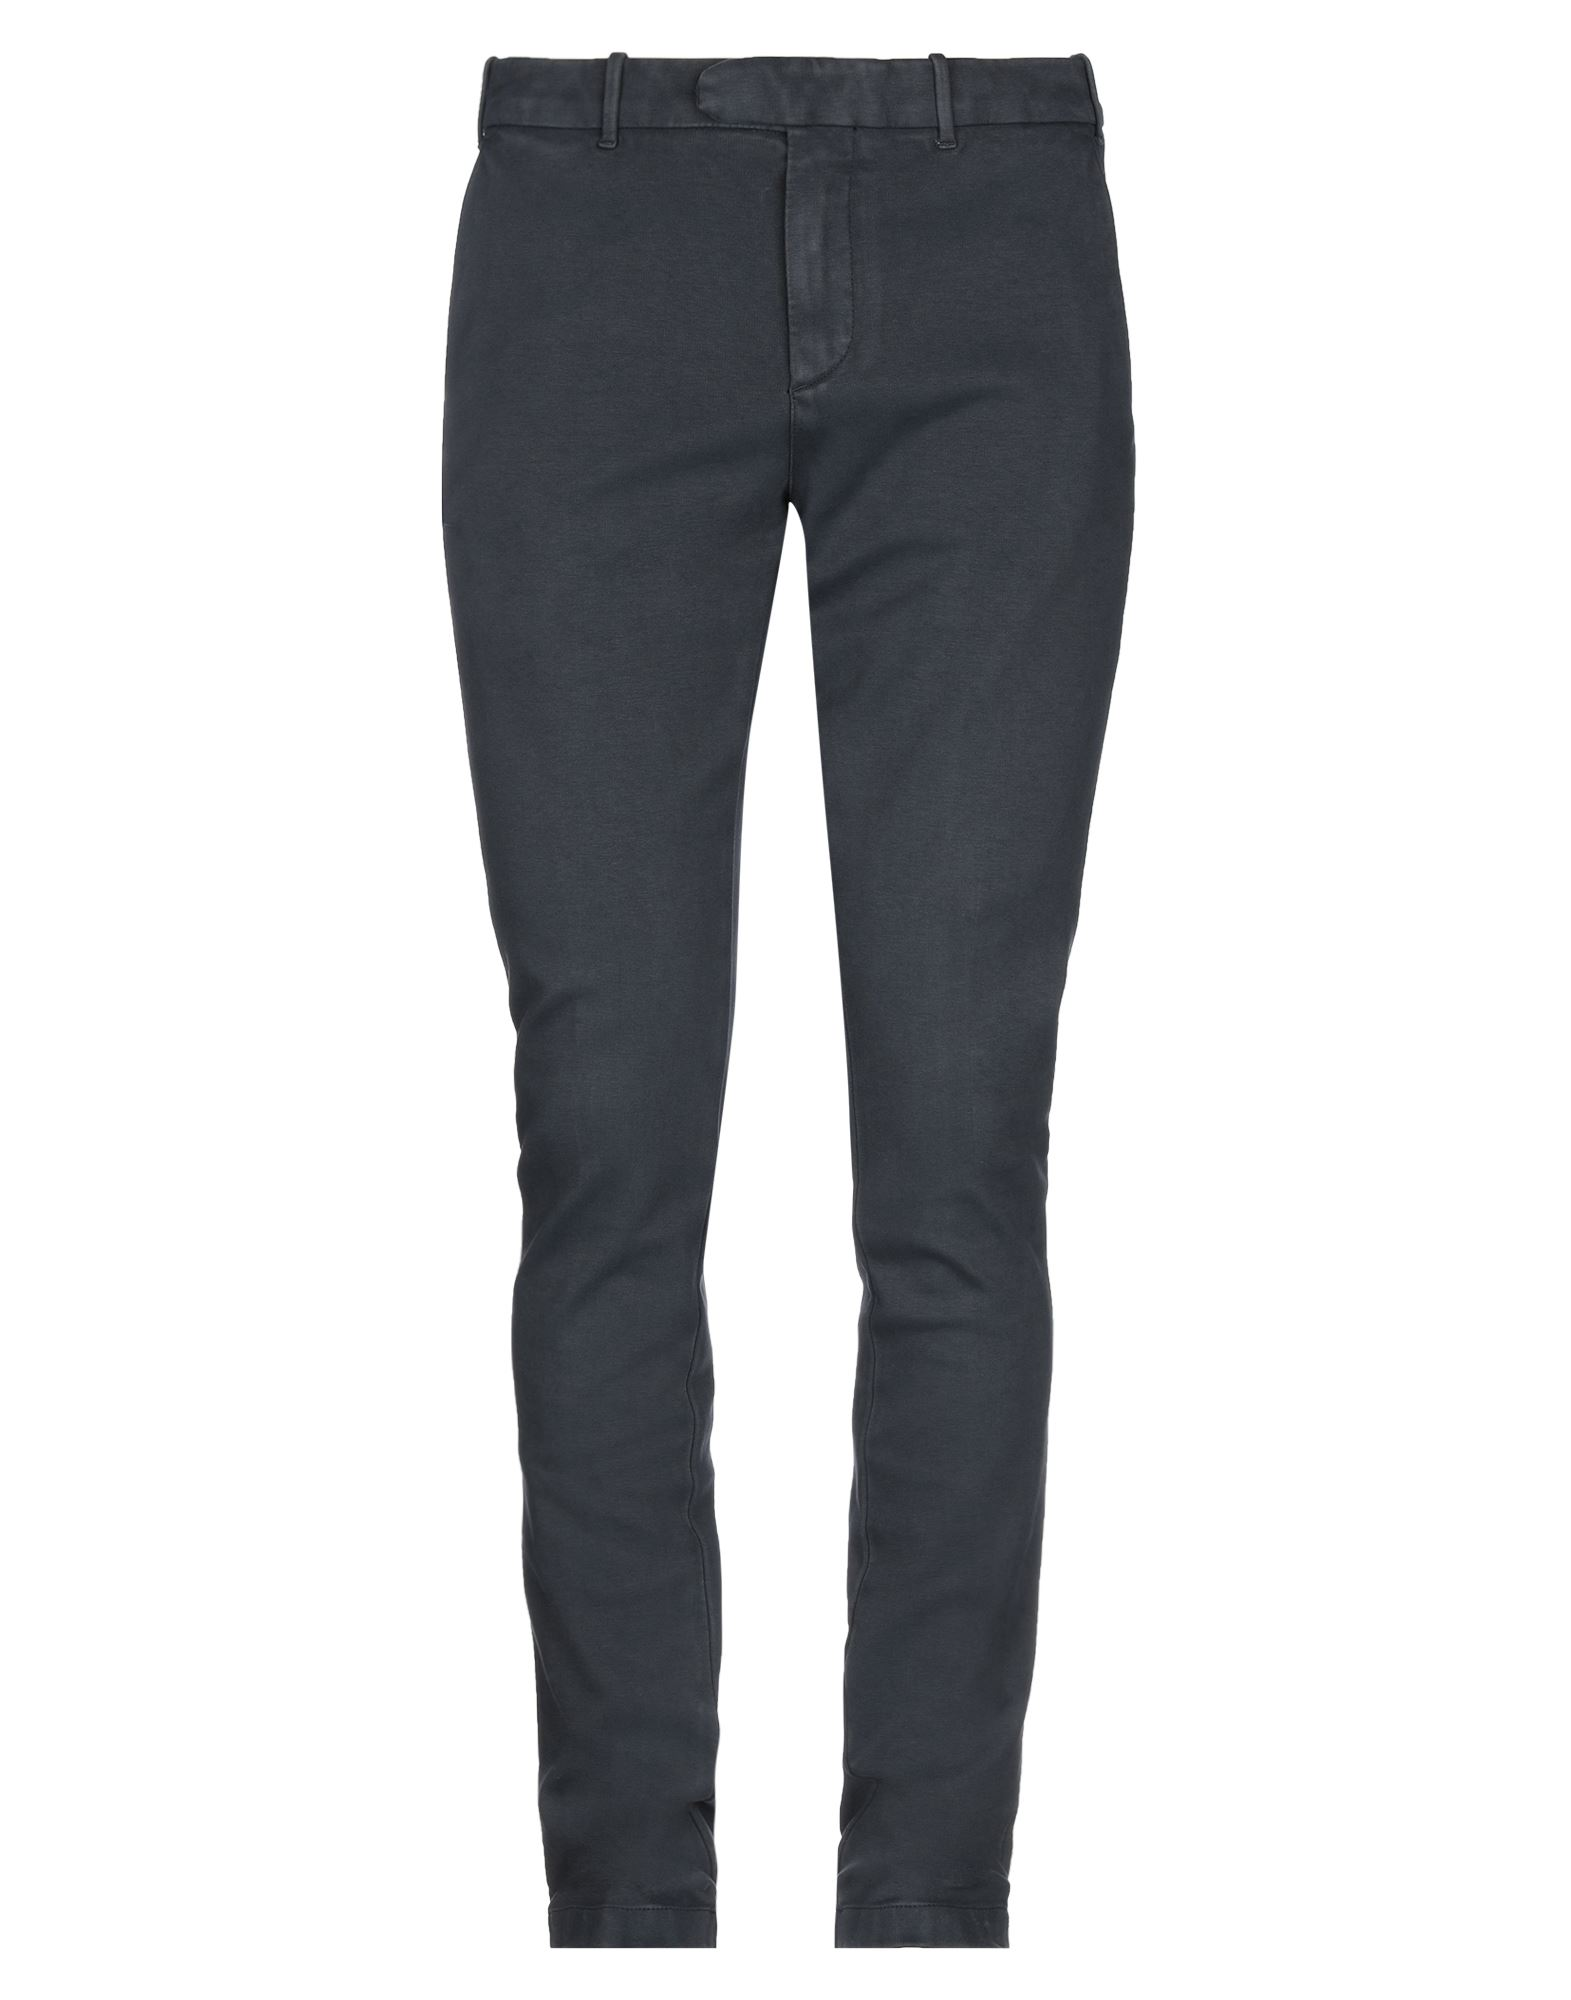 ELEVENTY Casual pants. jersey, no appliqués, basic solid color, mid rise, regular fit, tapered leg, button, zip, multipockets, stretch. 93% Cotton, 7% Elastane